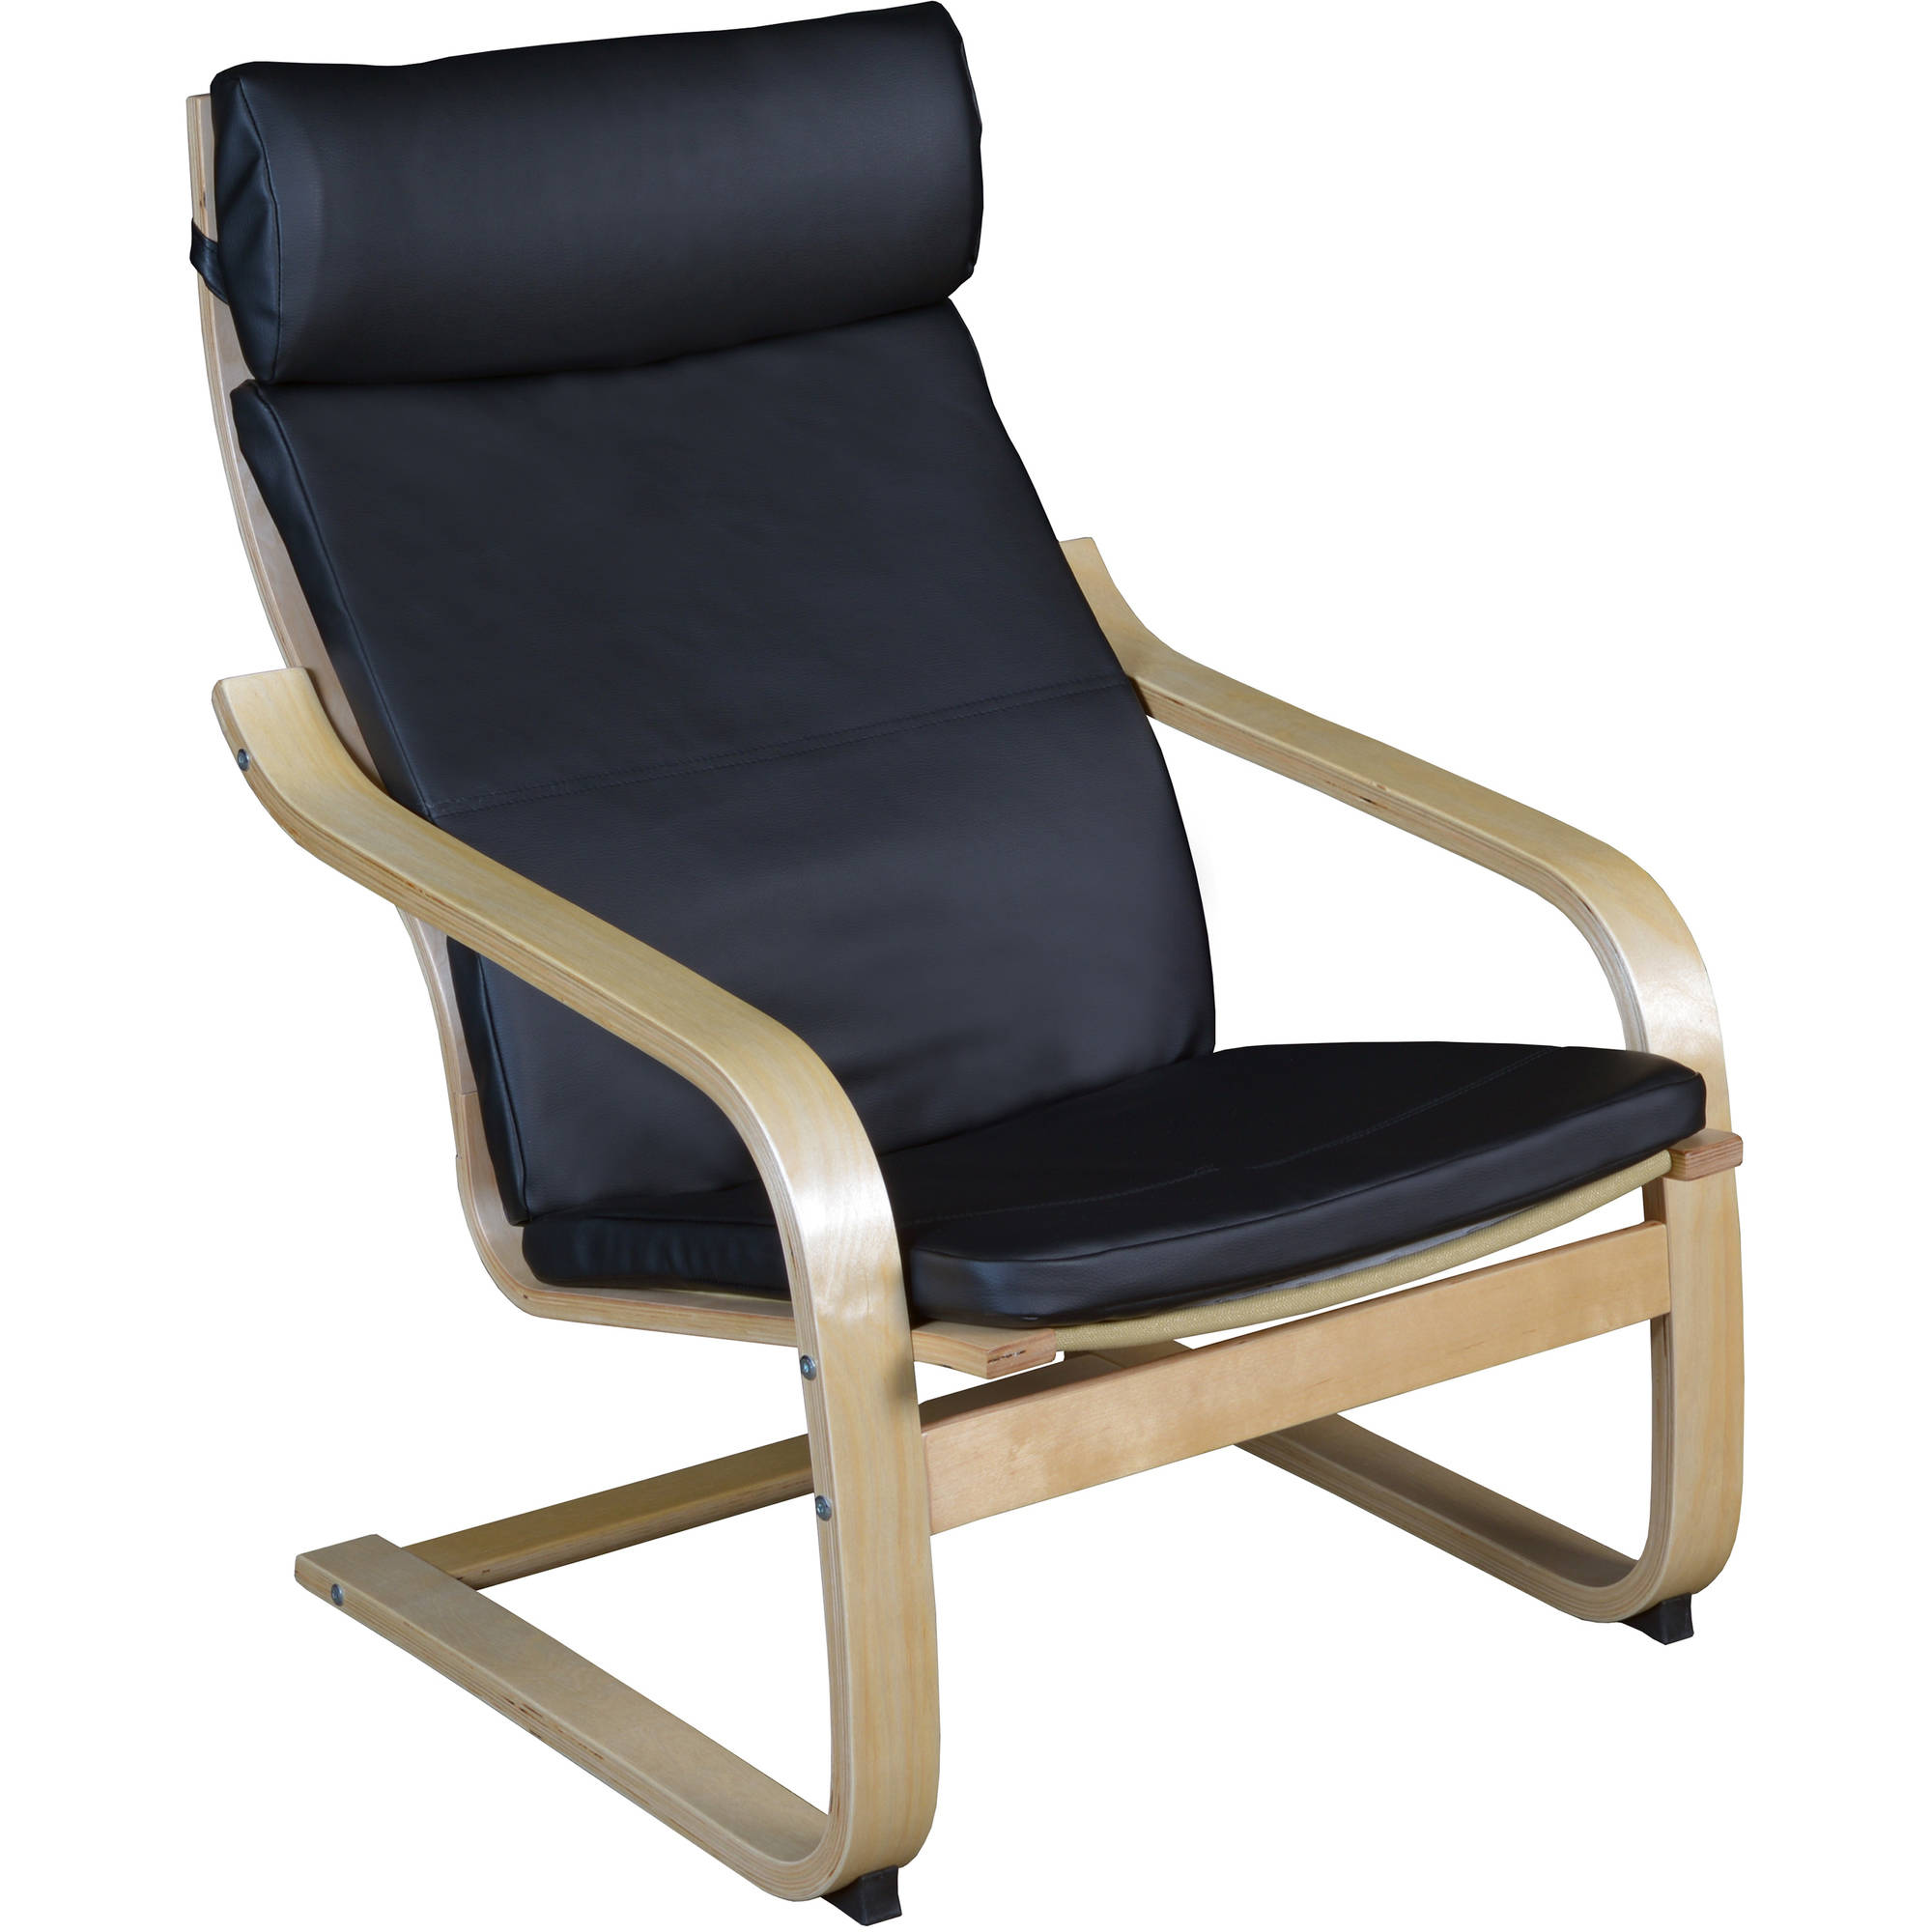 Regency Niche Mia Bentwood Chair, Natural/Black Vinyl